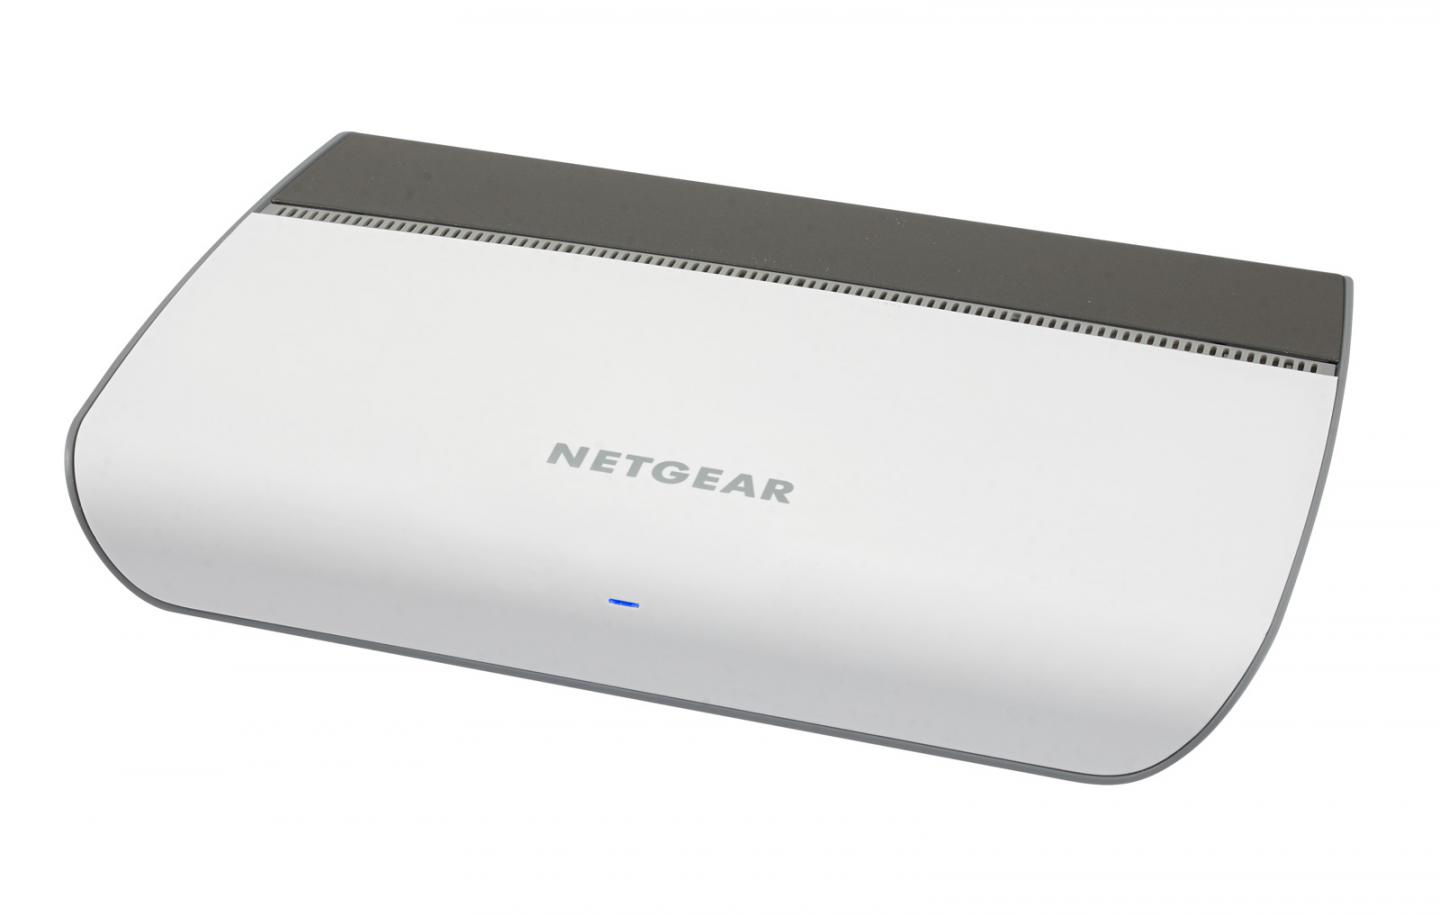 NetGear Restyles Switches with the GS908 Series